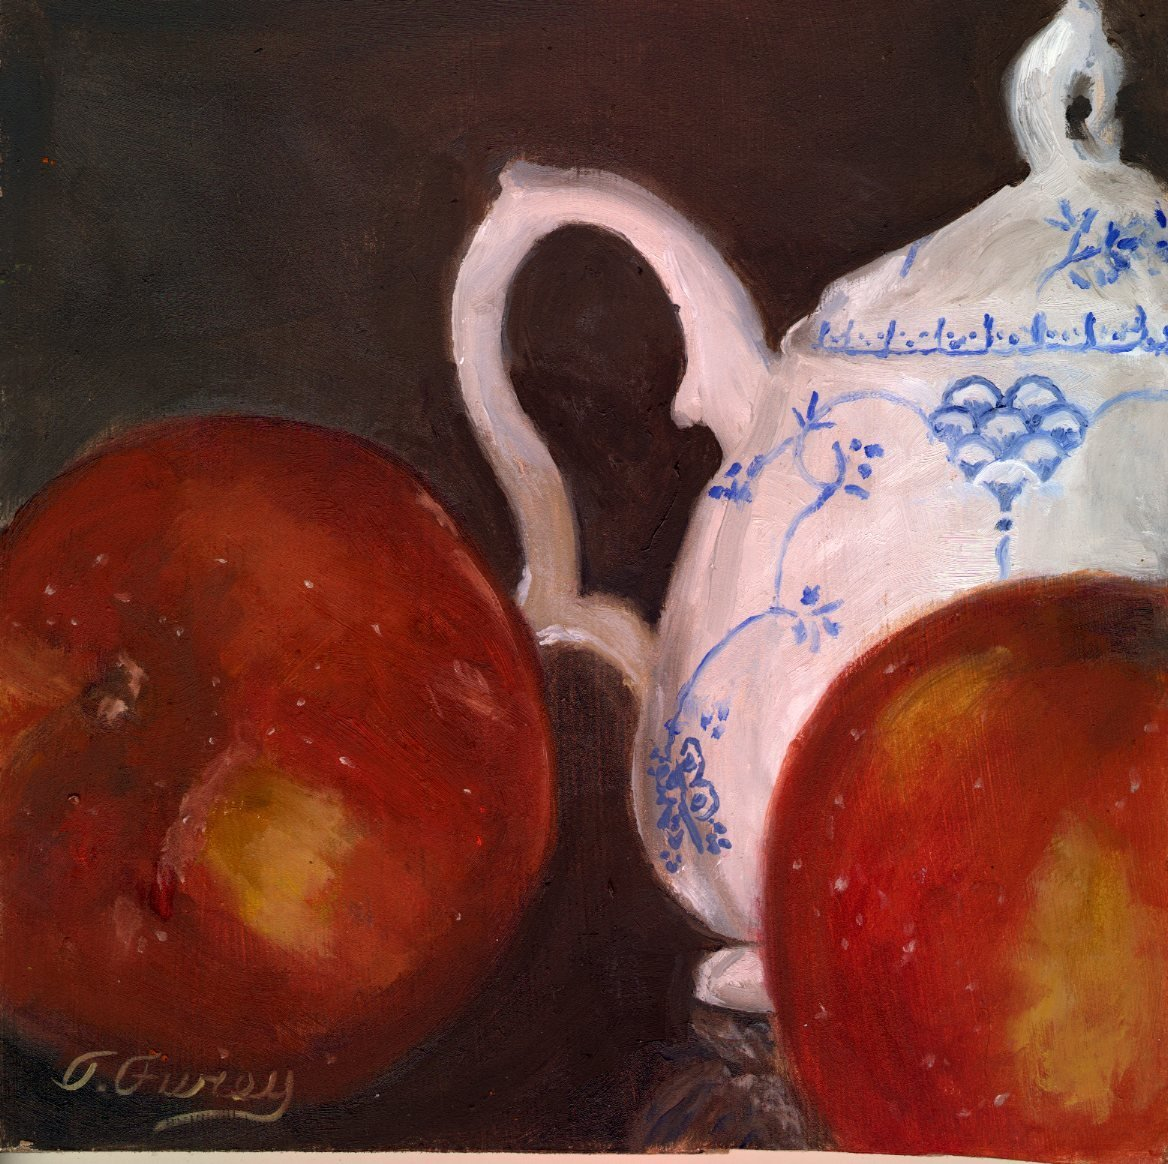 "Sugar Bowl and Apples, Alla Prima Oil Painting on Board, 8"" x 8""."